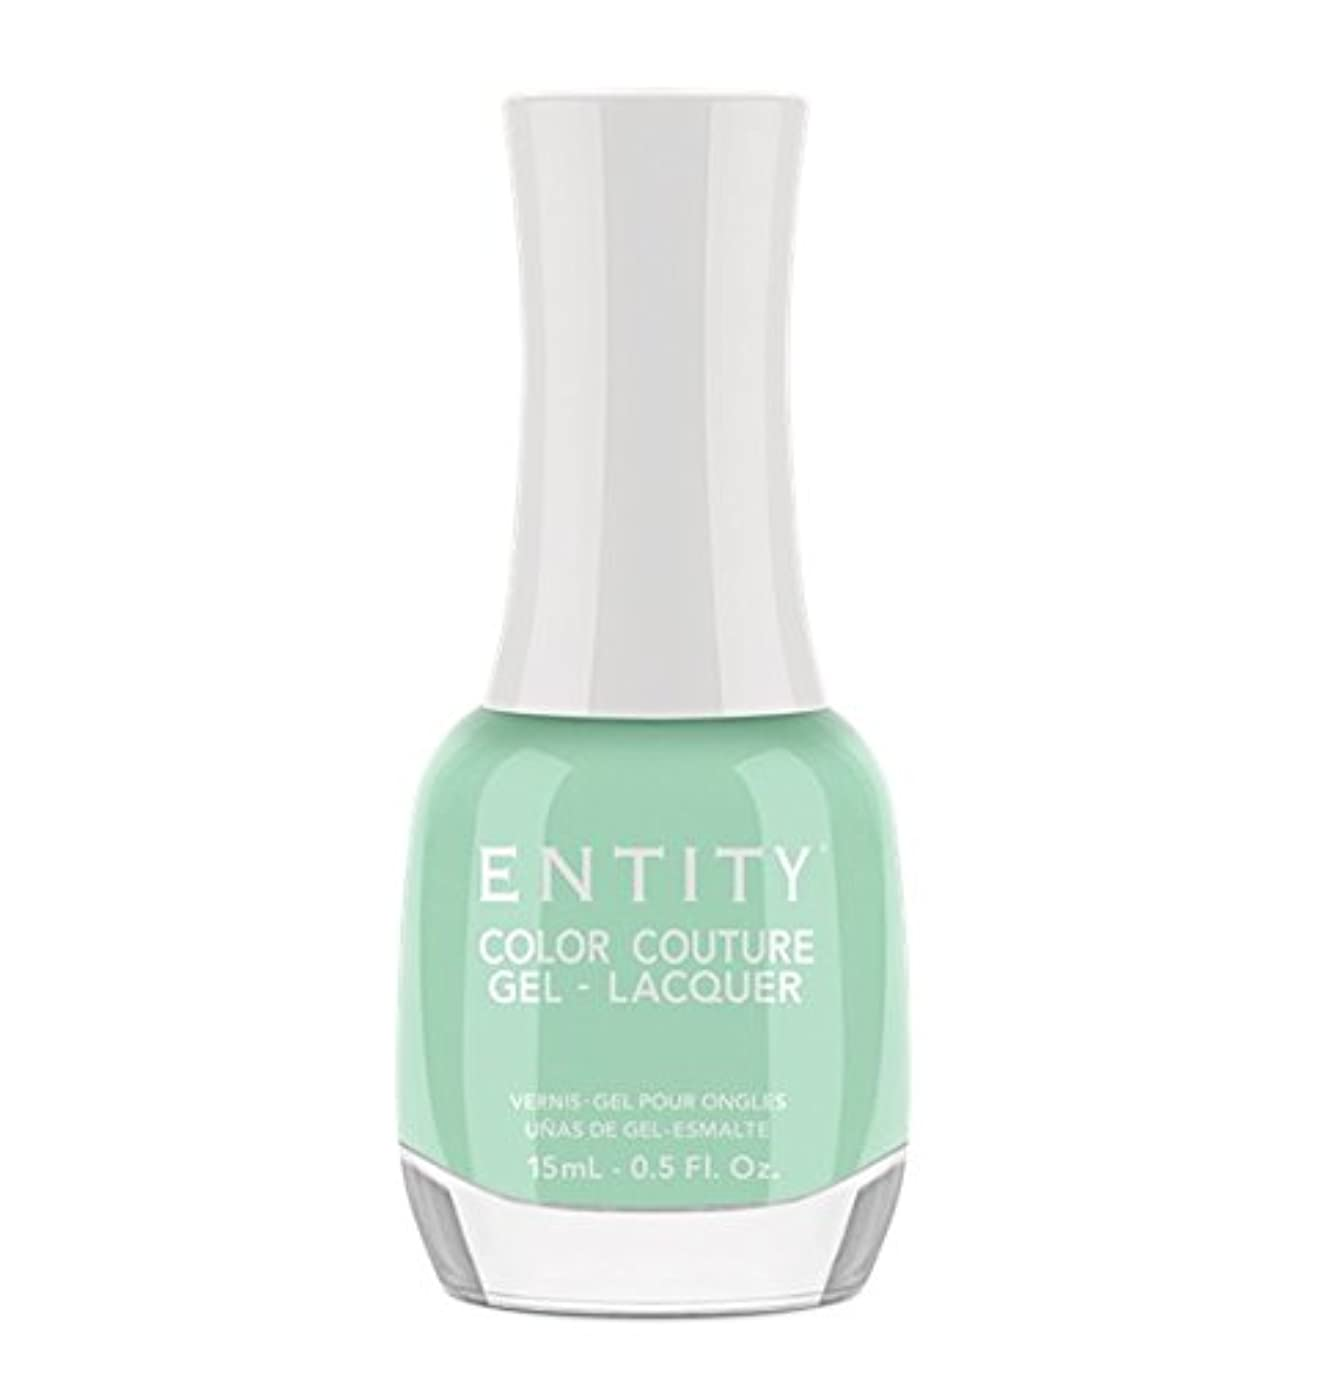 Entity Color Couture Gel-Lacquer - Statement Bag - 15 ml/0.5 oz